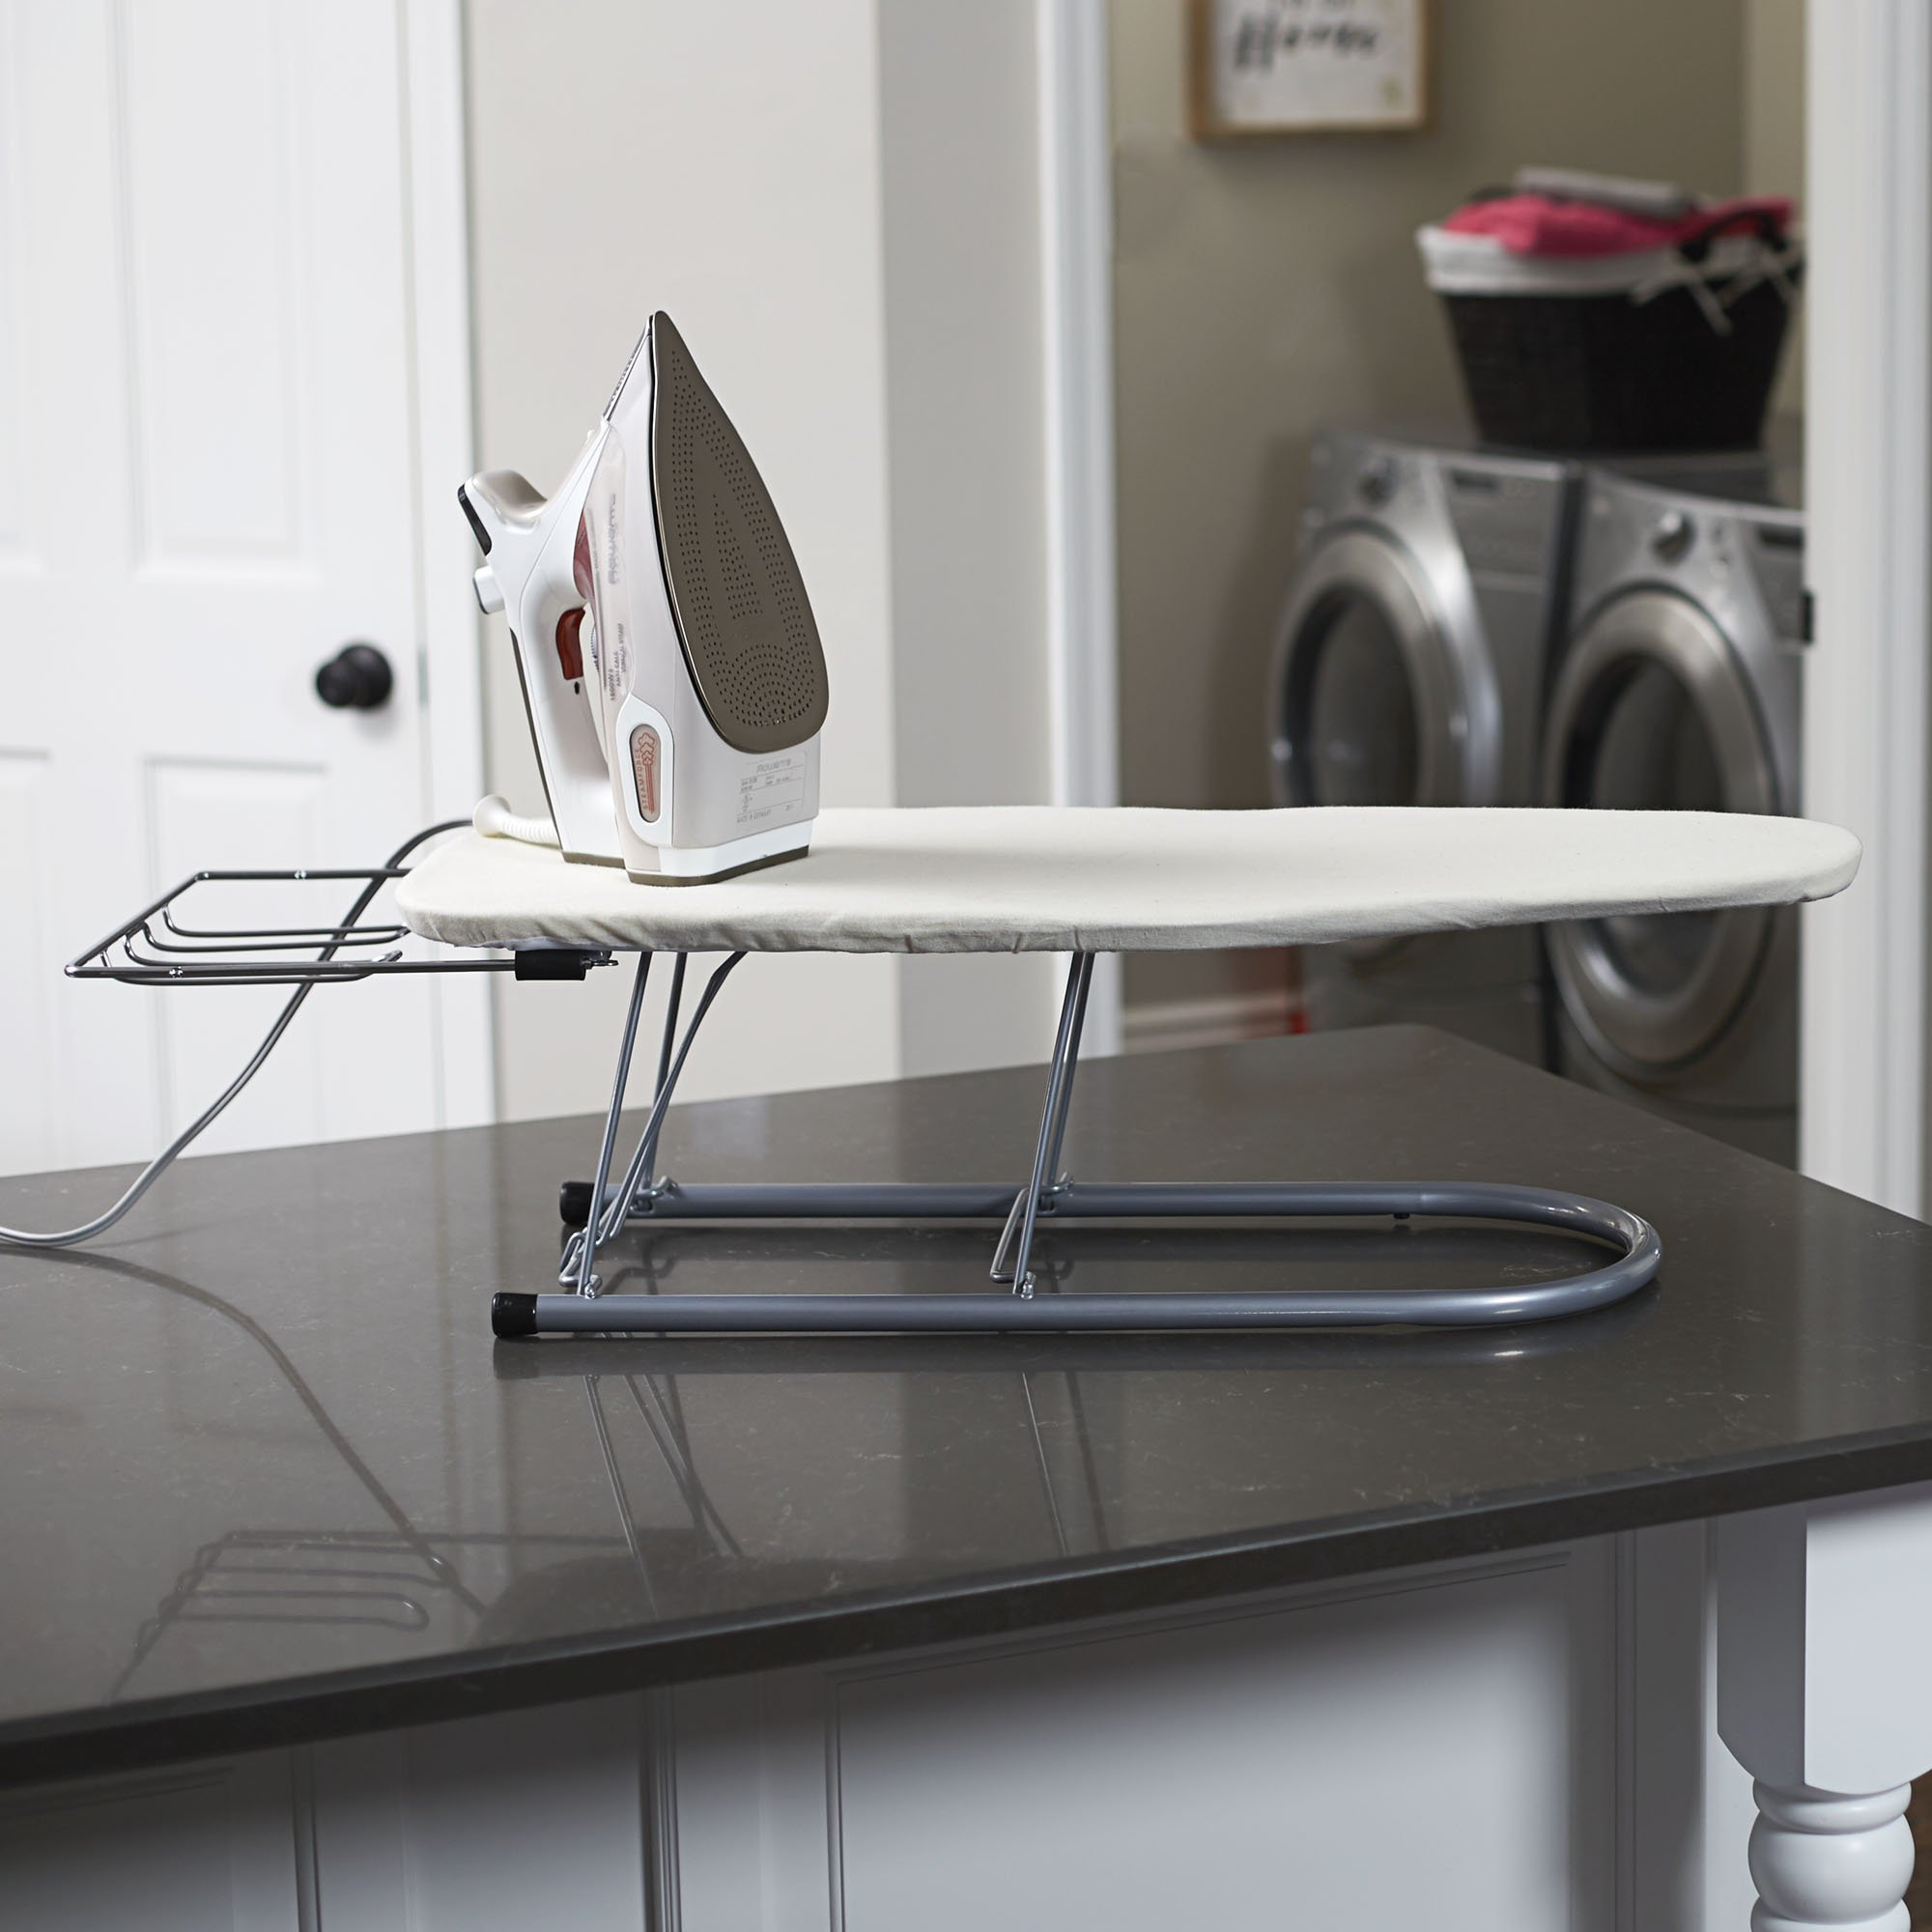 Household Essentials 131210 Small Steel Table Top Ironing Board with Iron Rest | Natural Cover